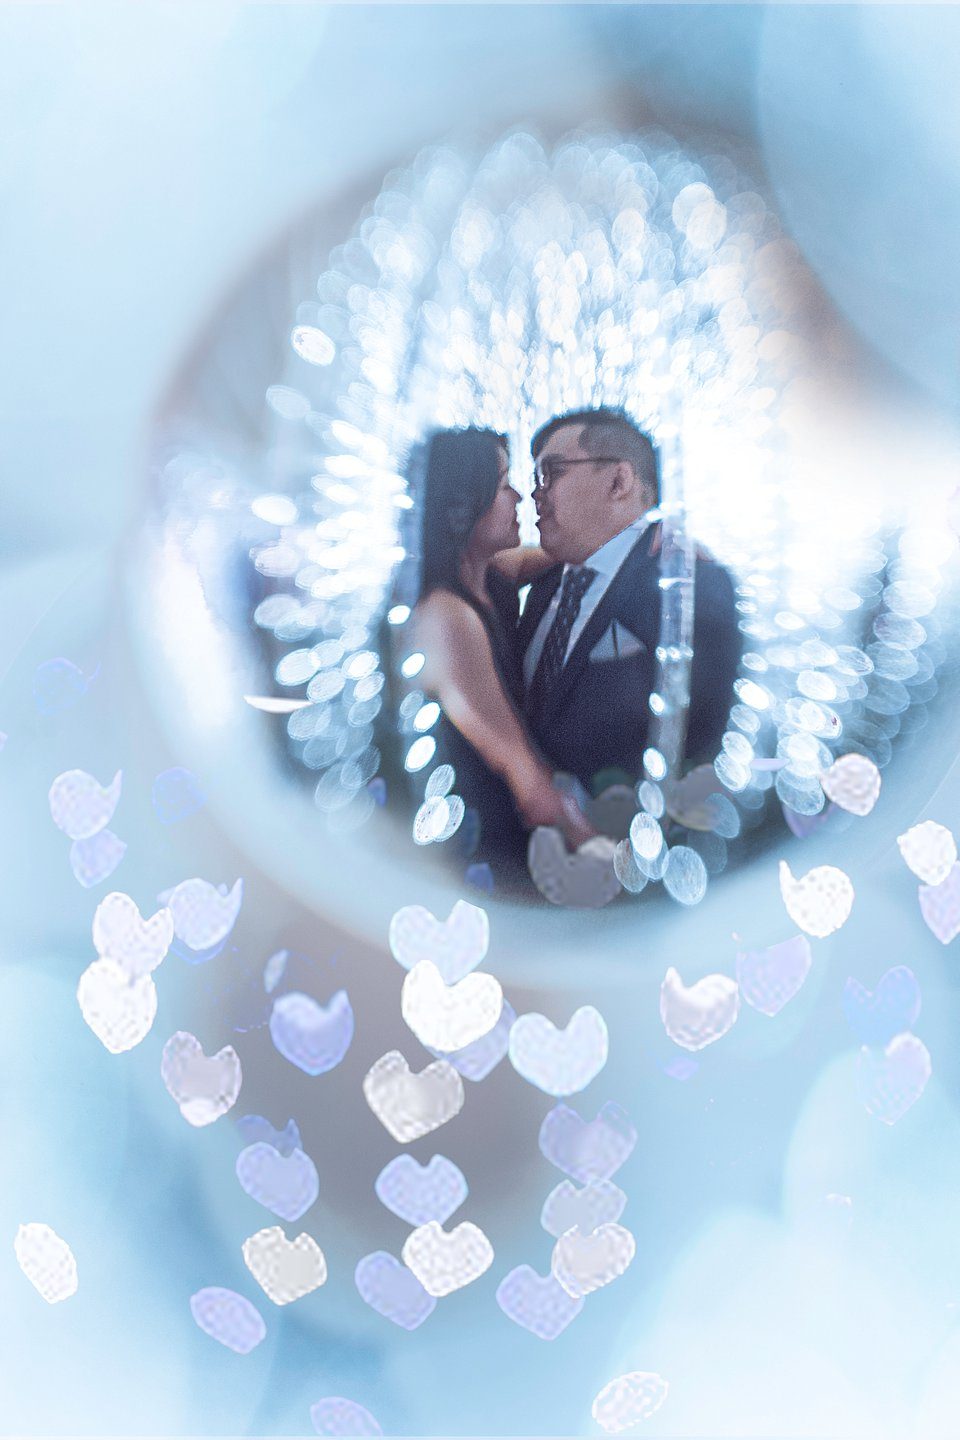 Search ResultsWeb result with site linksVJ-engagement-Glow Edmonton Christmas Light Festival-wedding-photography_0001